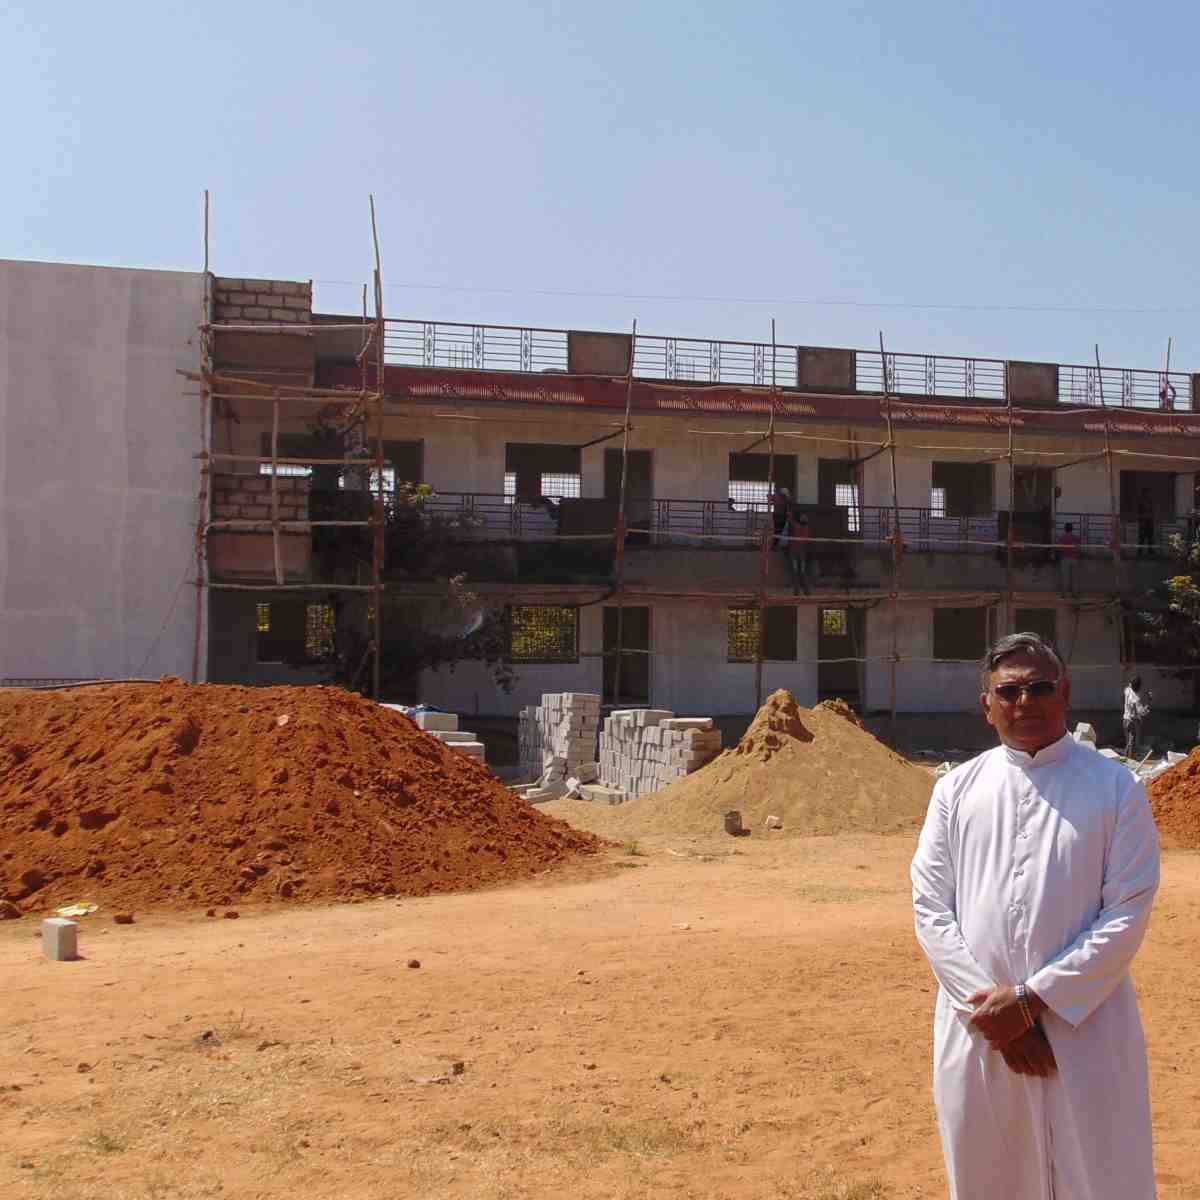 Fr. Selvaraj in front of the new postulant dorm you helped build!